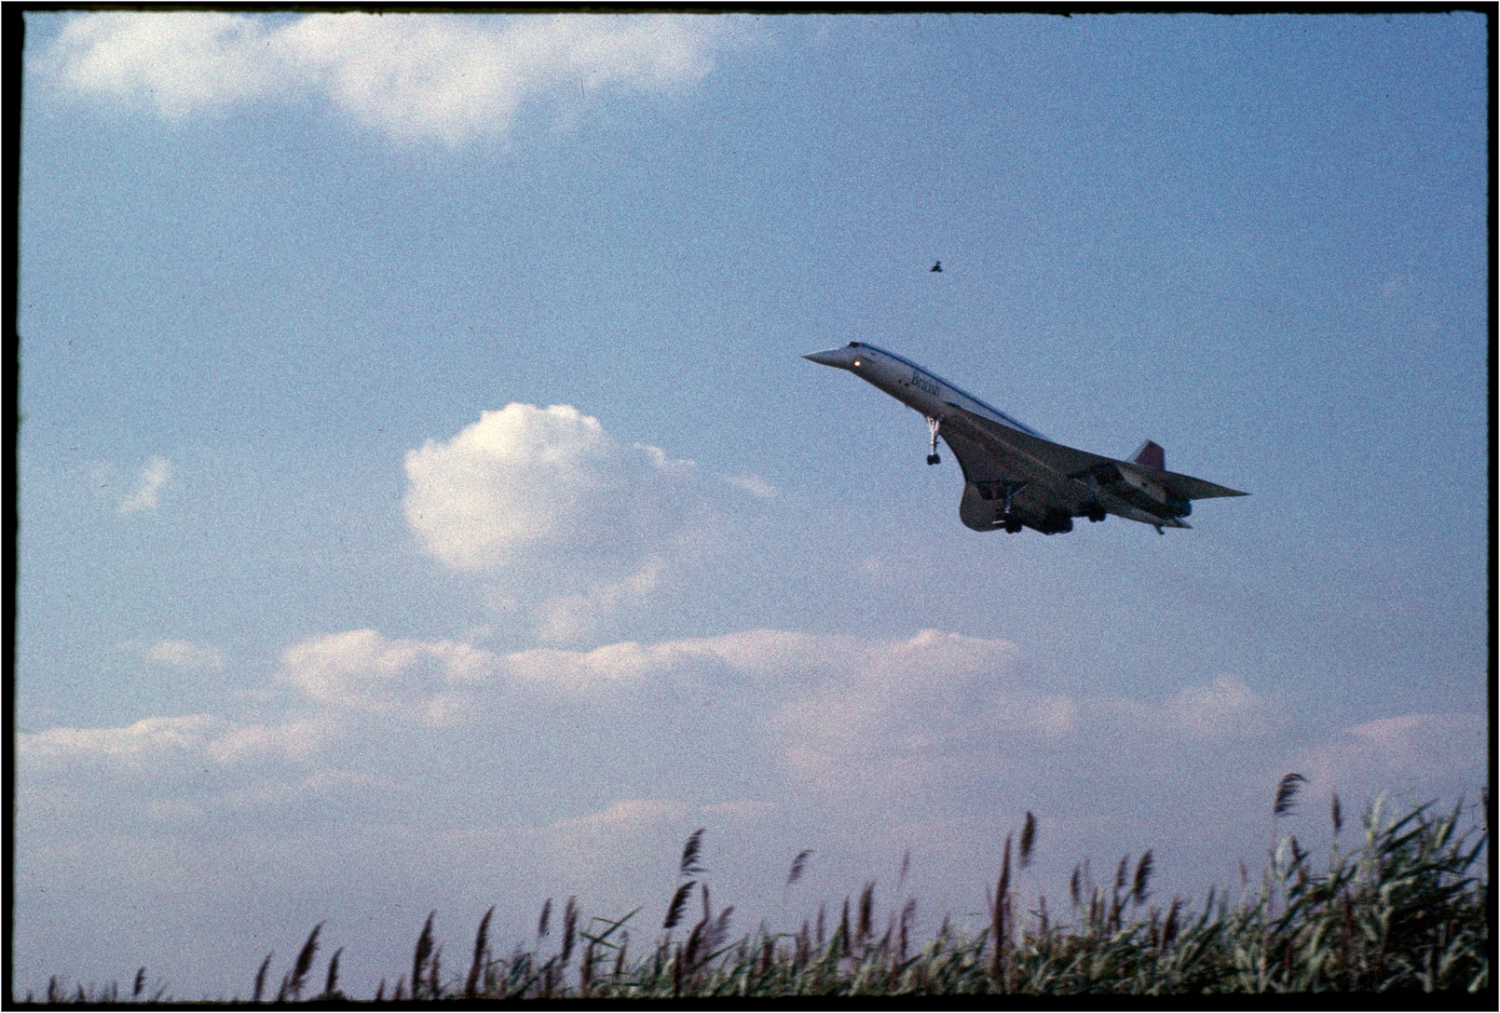 Concorde-Lands-JFK-1985 copy